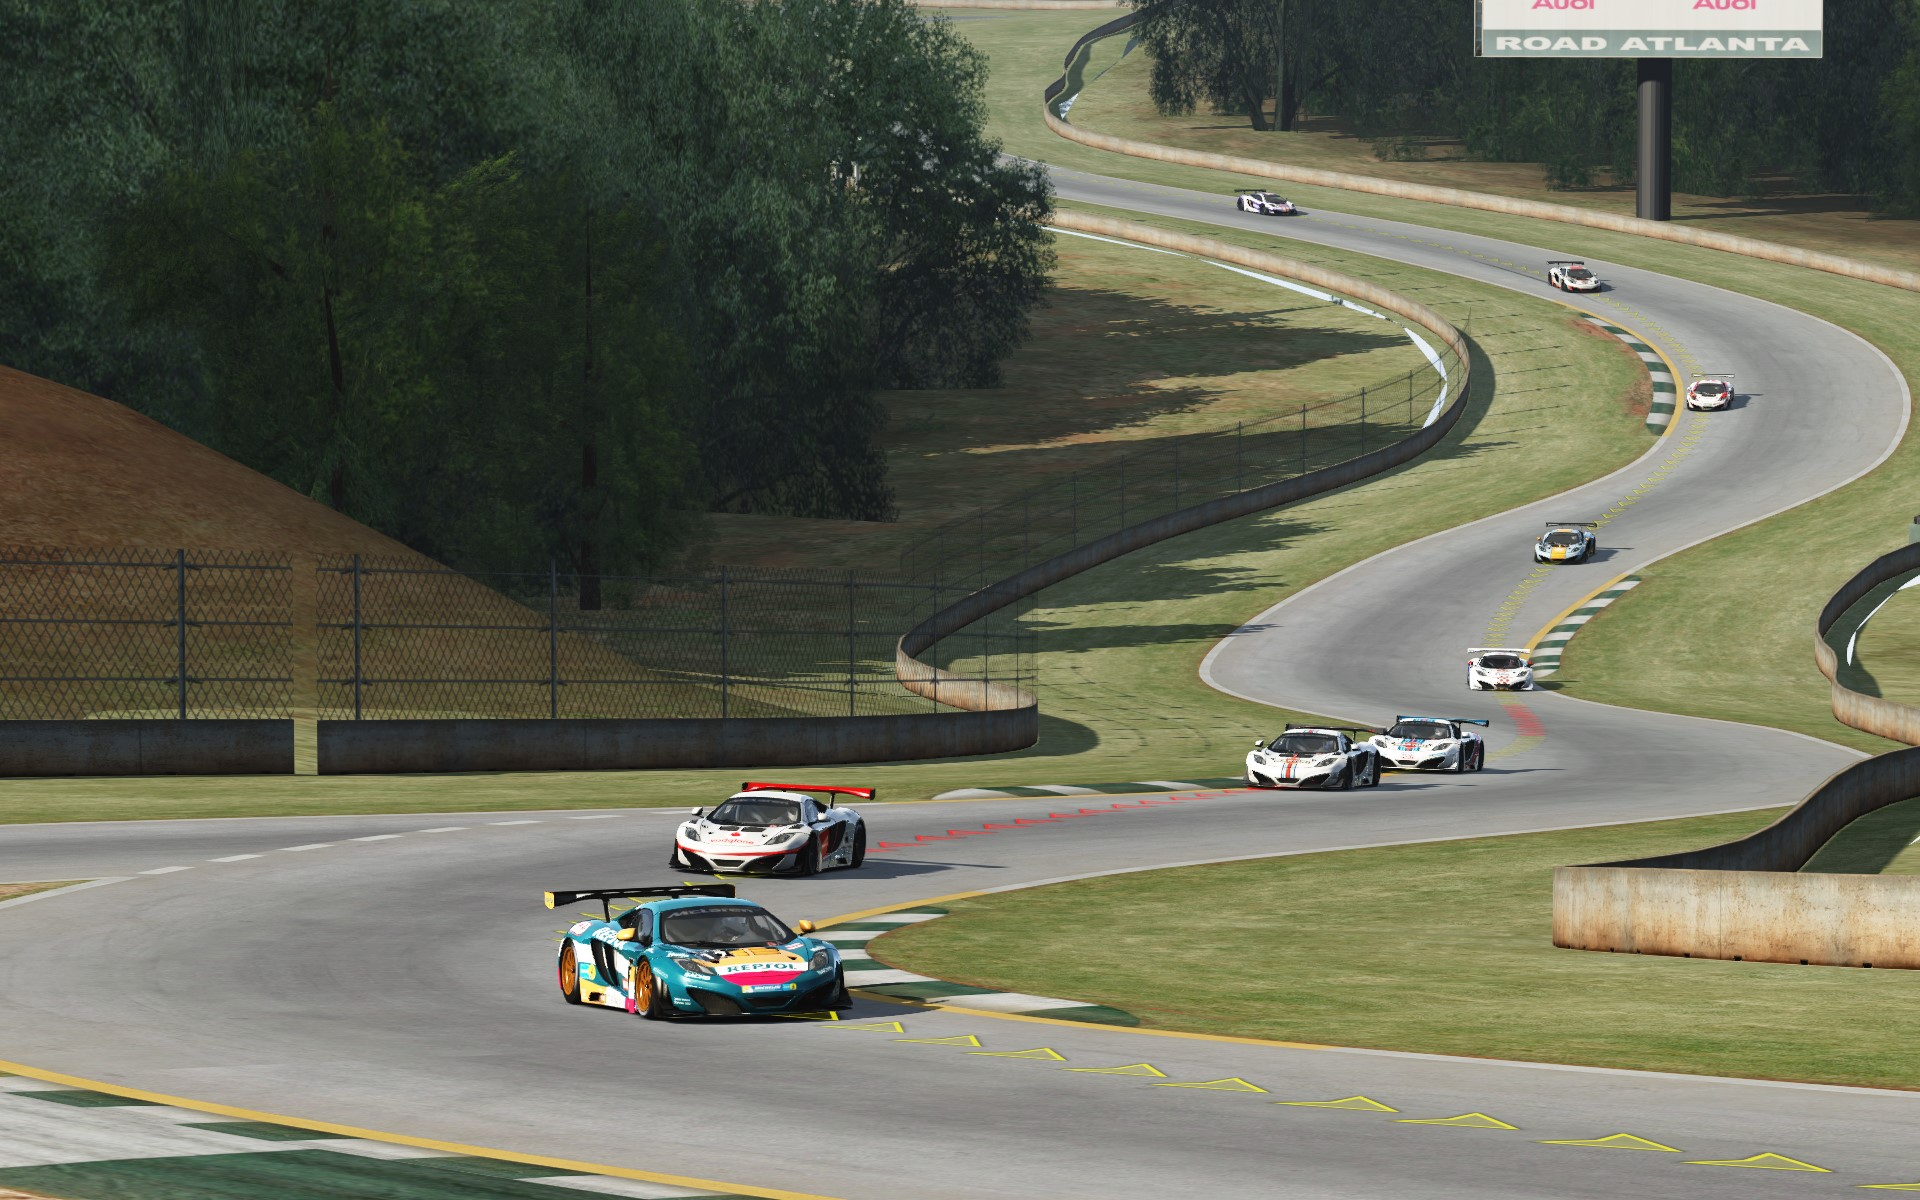 Screenshot_mclaren_mp412c_gt3_road atlanta_10-8-115-13-58-56.jpg